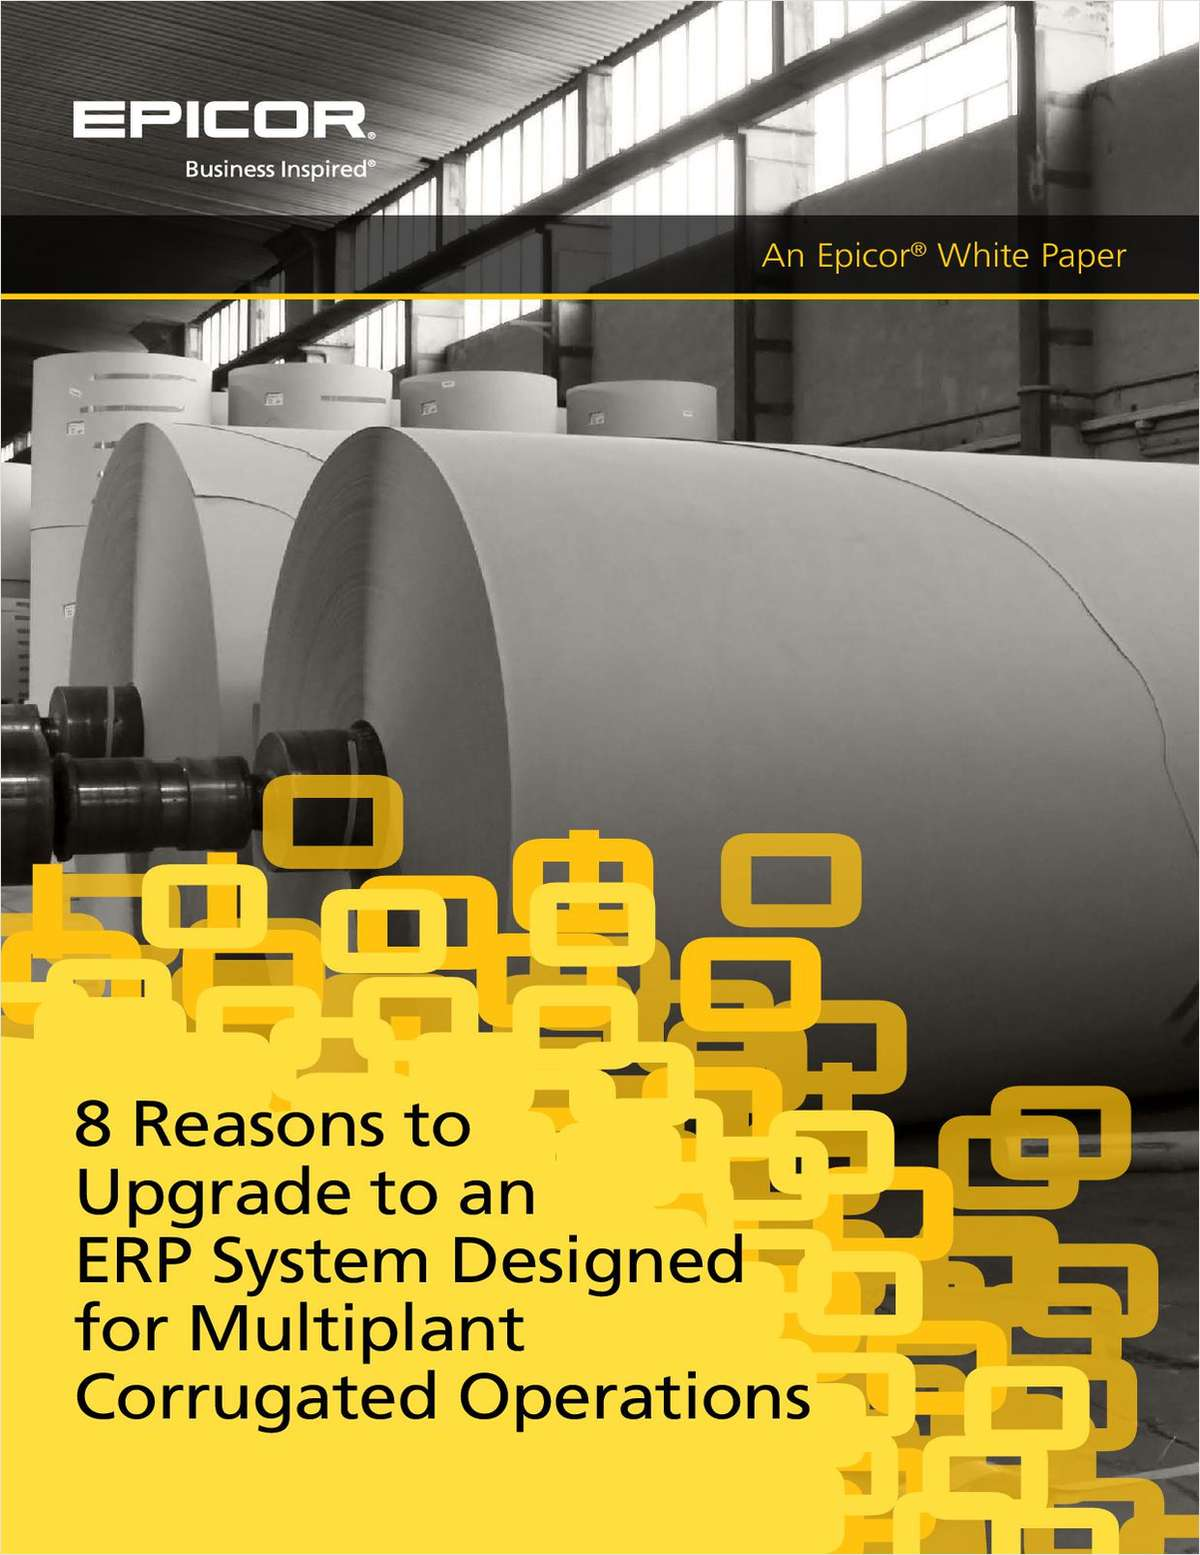 Corrugated Packaging Manufacturers: 8 Reasons to Upgrade Your ERP System